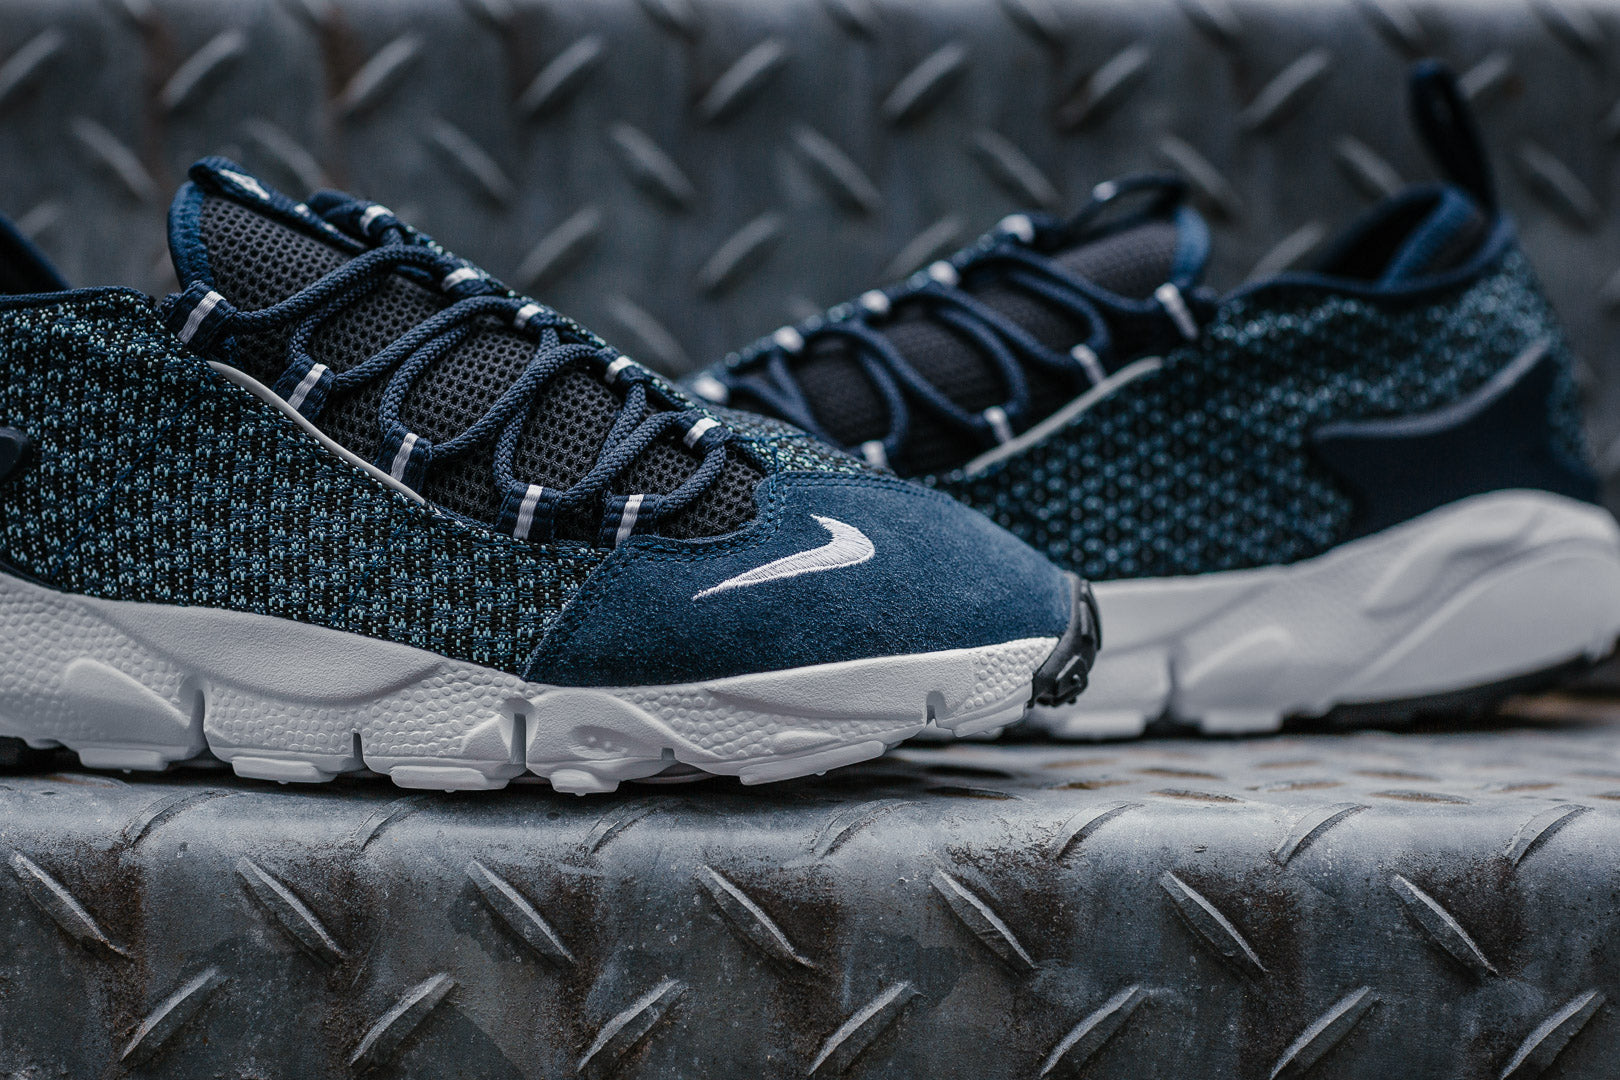 Nike Air Footscape NM Jacquard 898007-400